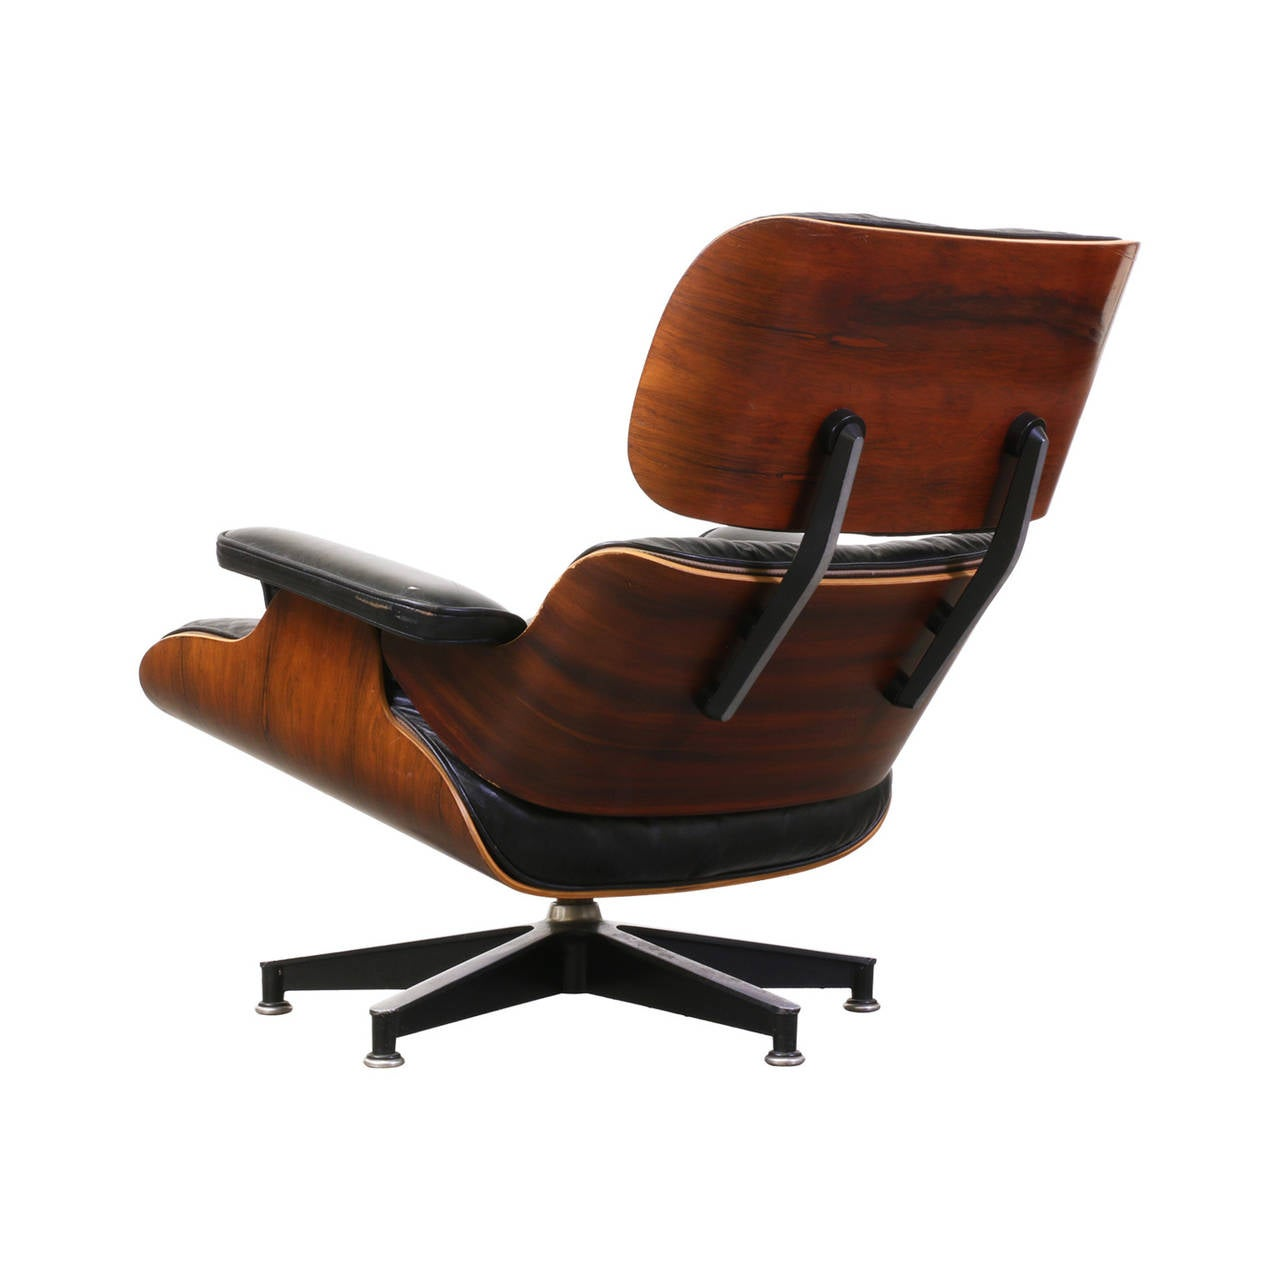 Charles Eames Lounge Chair Charles And Ray Eames 670 Leather And Rosewood Lounge